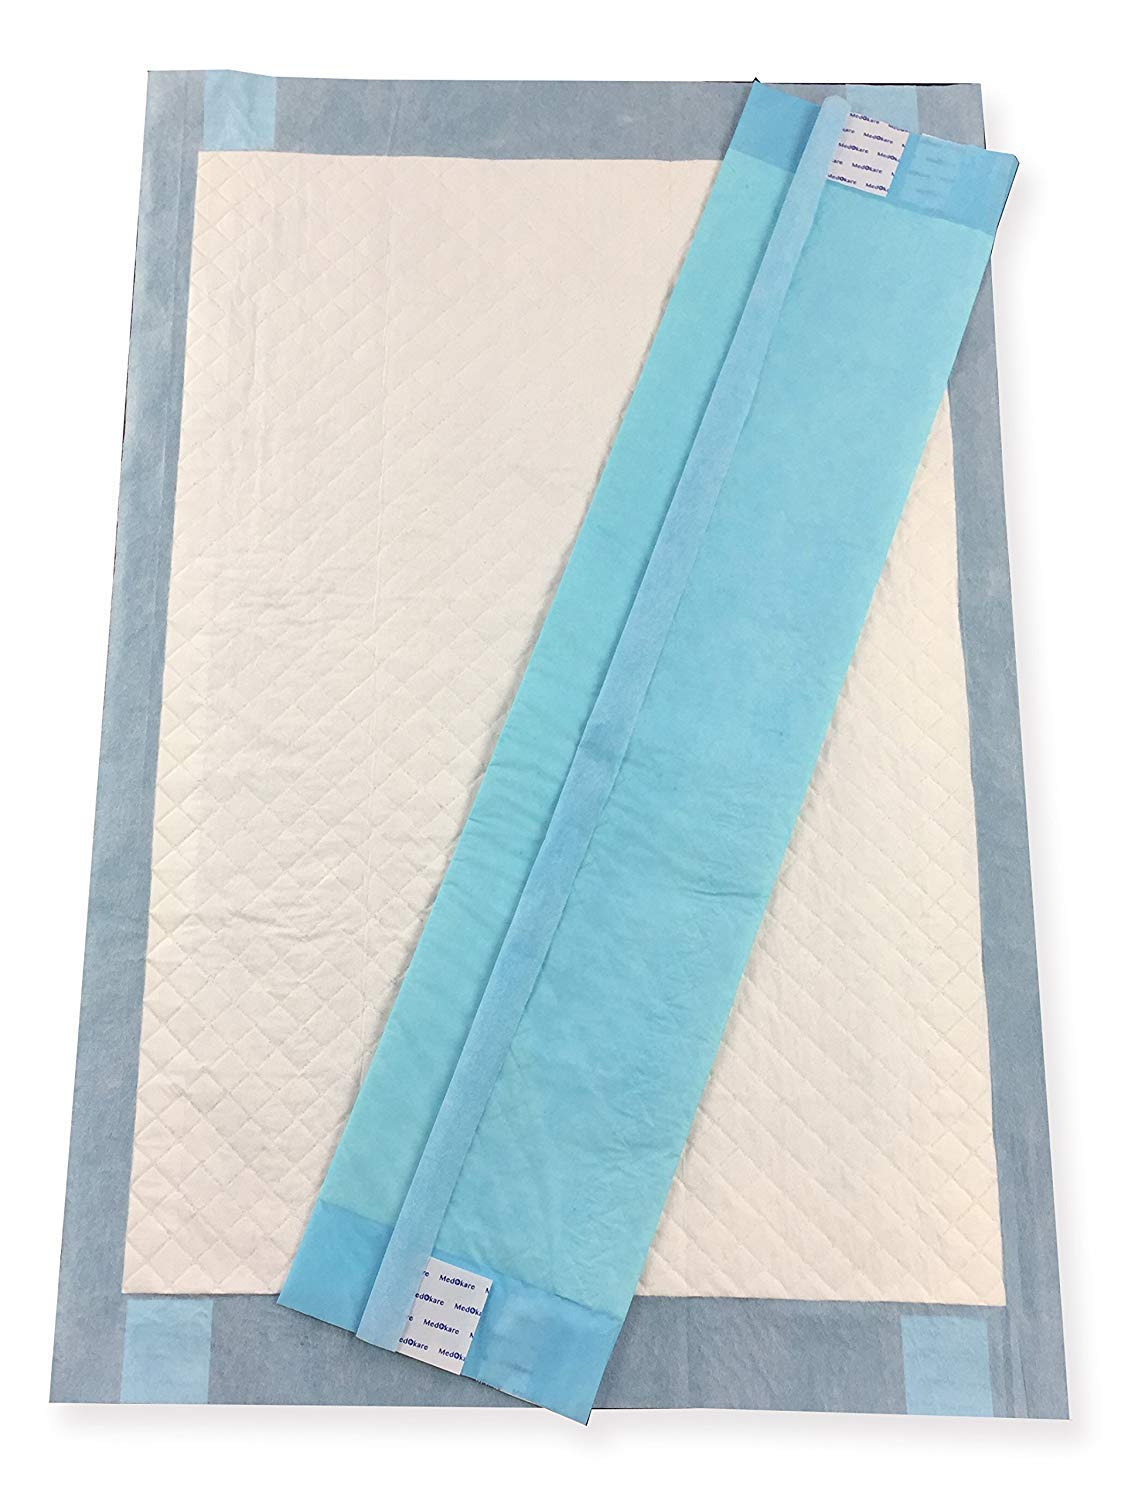 Medokare Disposable Incontinence Bed Pads, Hospital 1500ml Disposable Underpads for Elderly Adults Kids Disposable Bed Liner Mat, 10g SAP (72 Pads w/Tags)